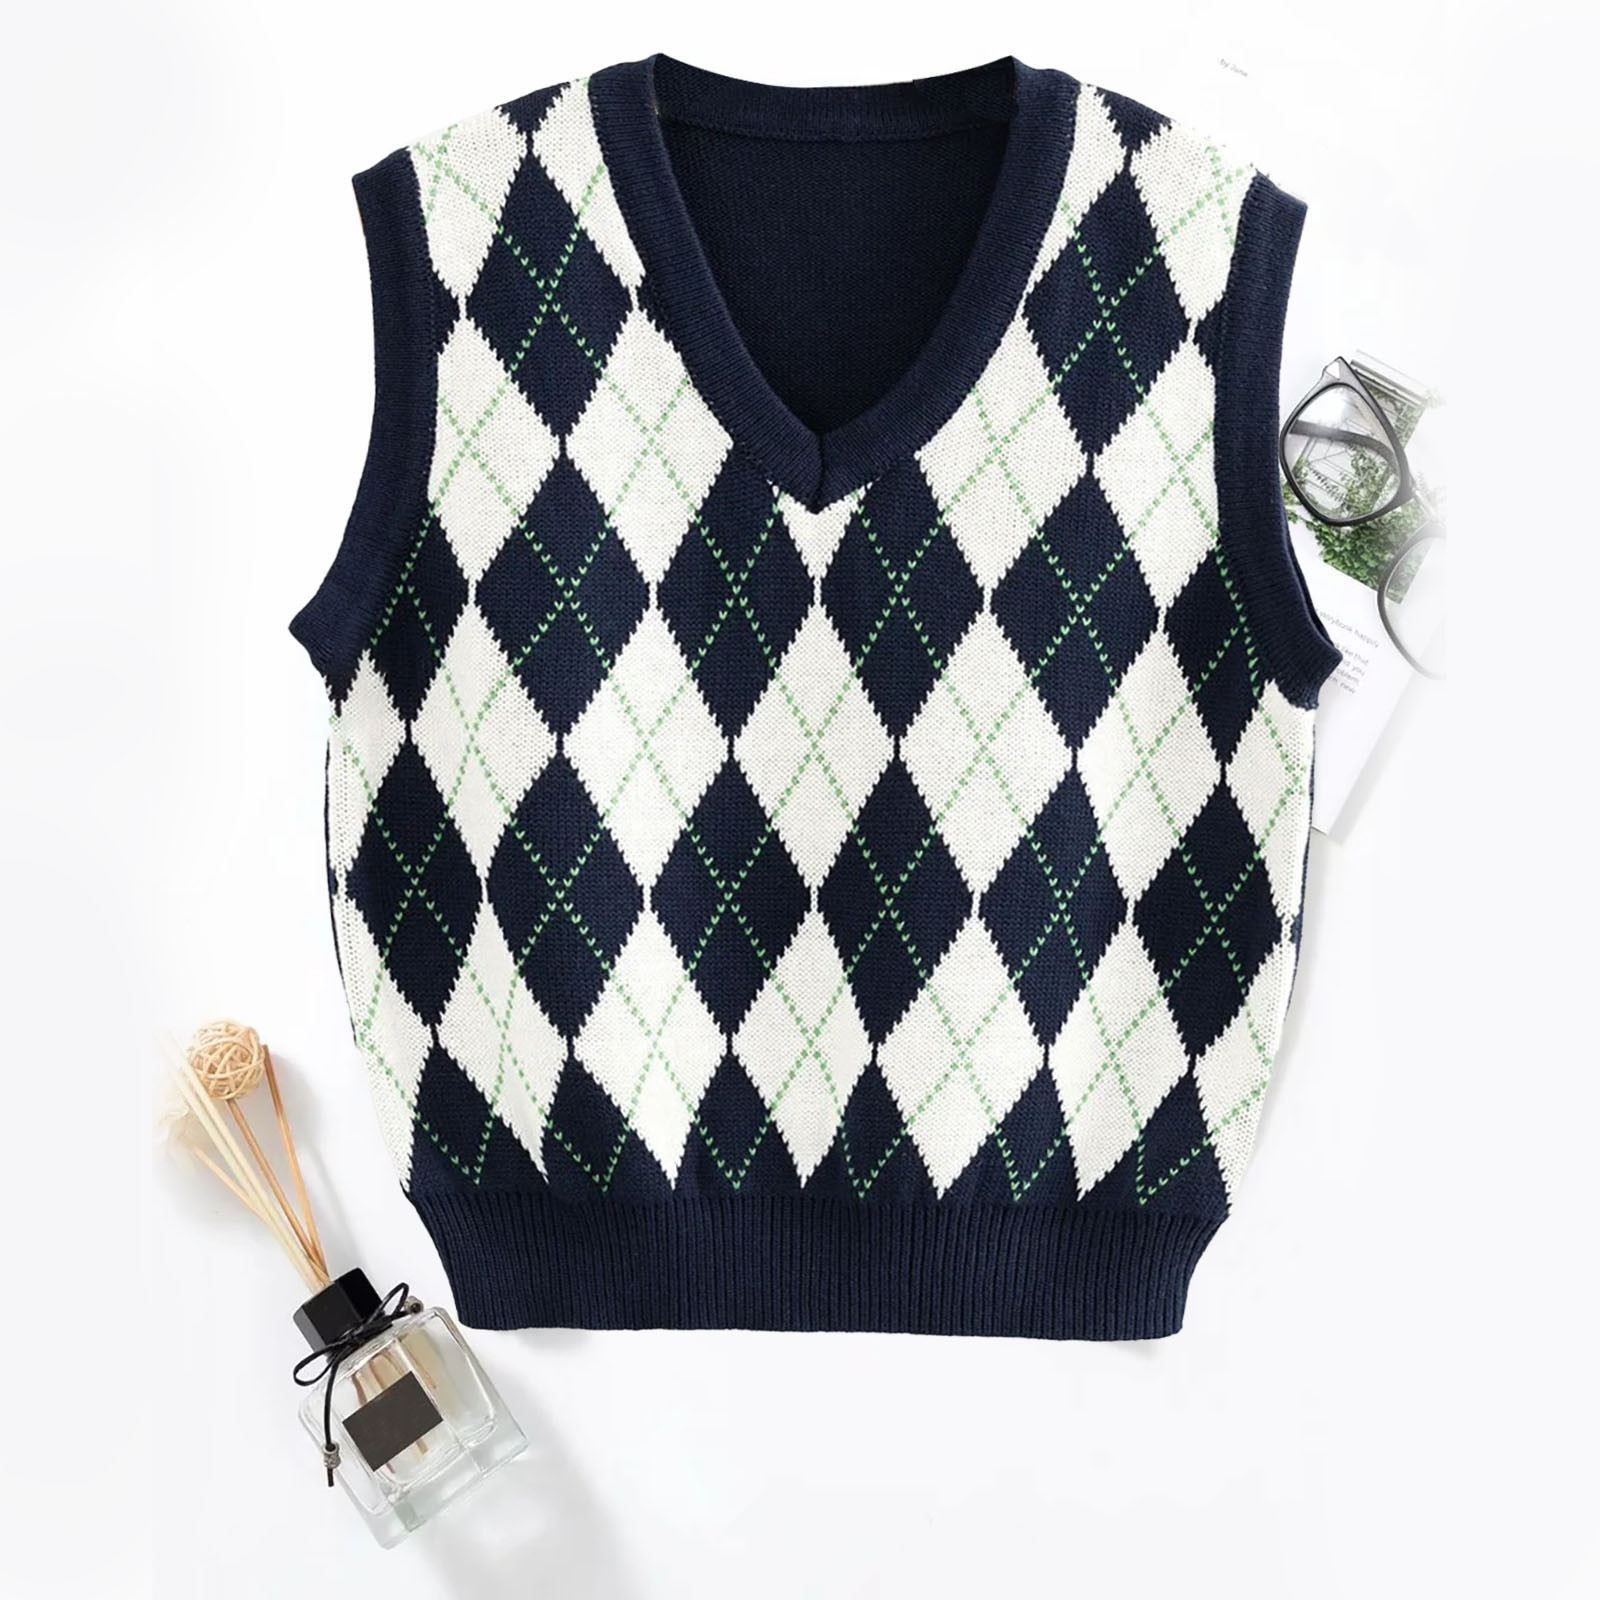 Women's Sweater New Women's Round Neck Diamond Check Sweater Top Sleeveless Vest blue crossed back design round neck sleeveless top